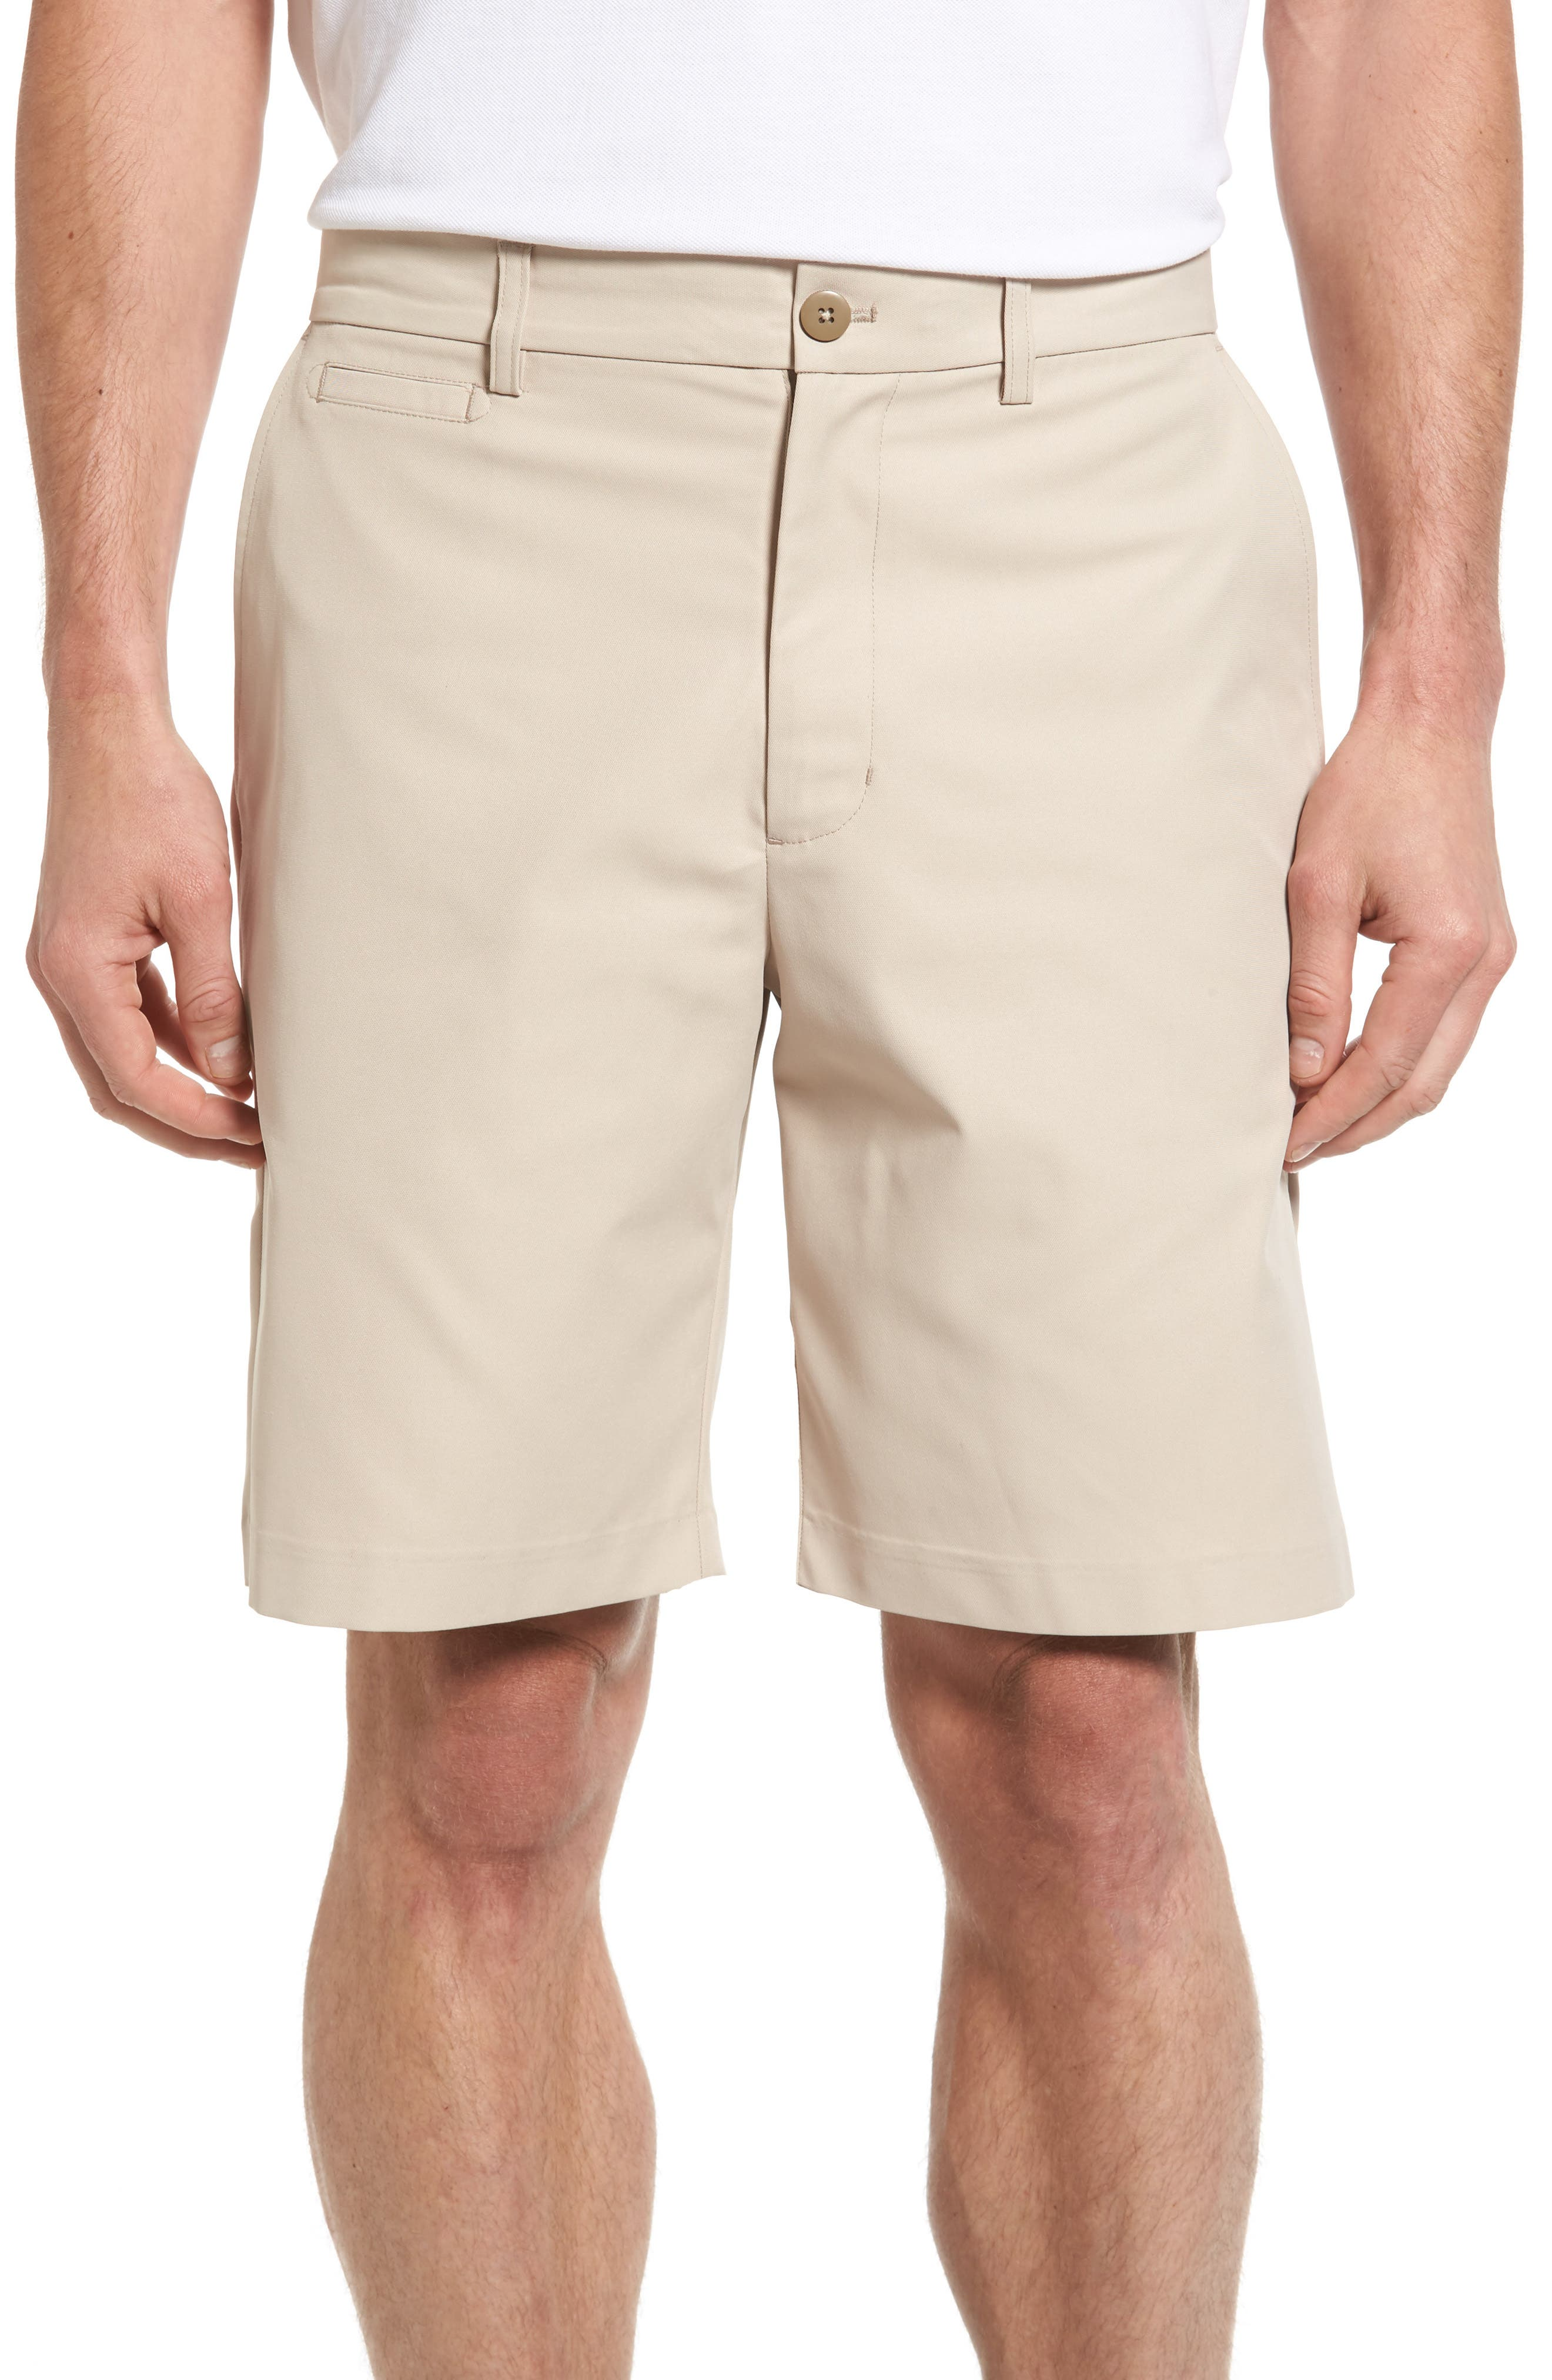 Nordstrom Men's Shop Flat Front Performance Shorts